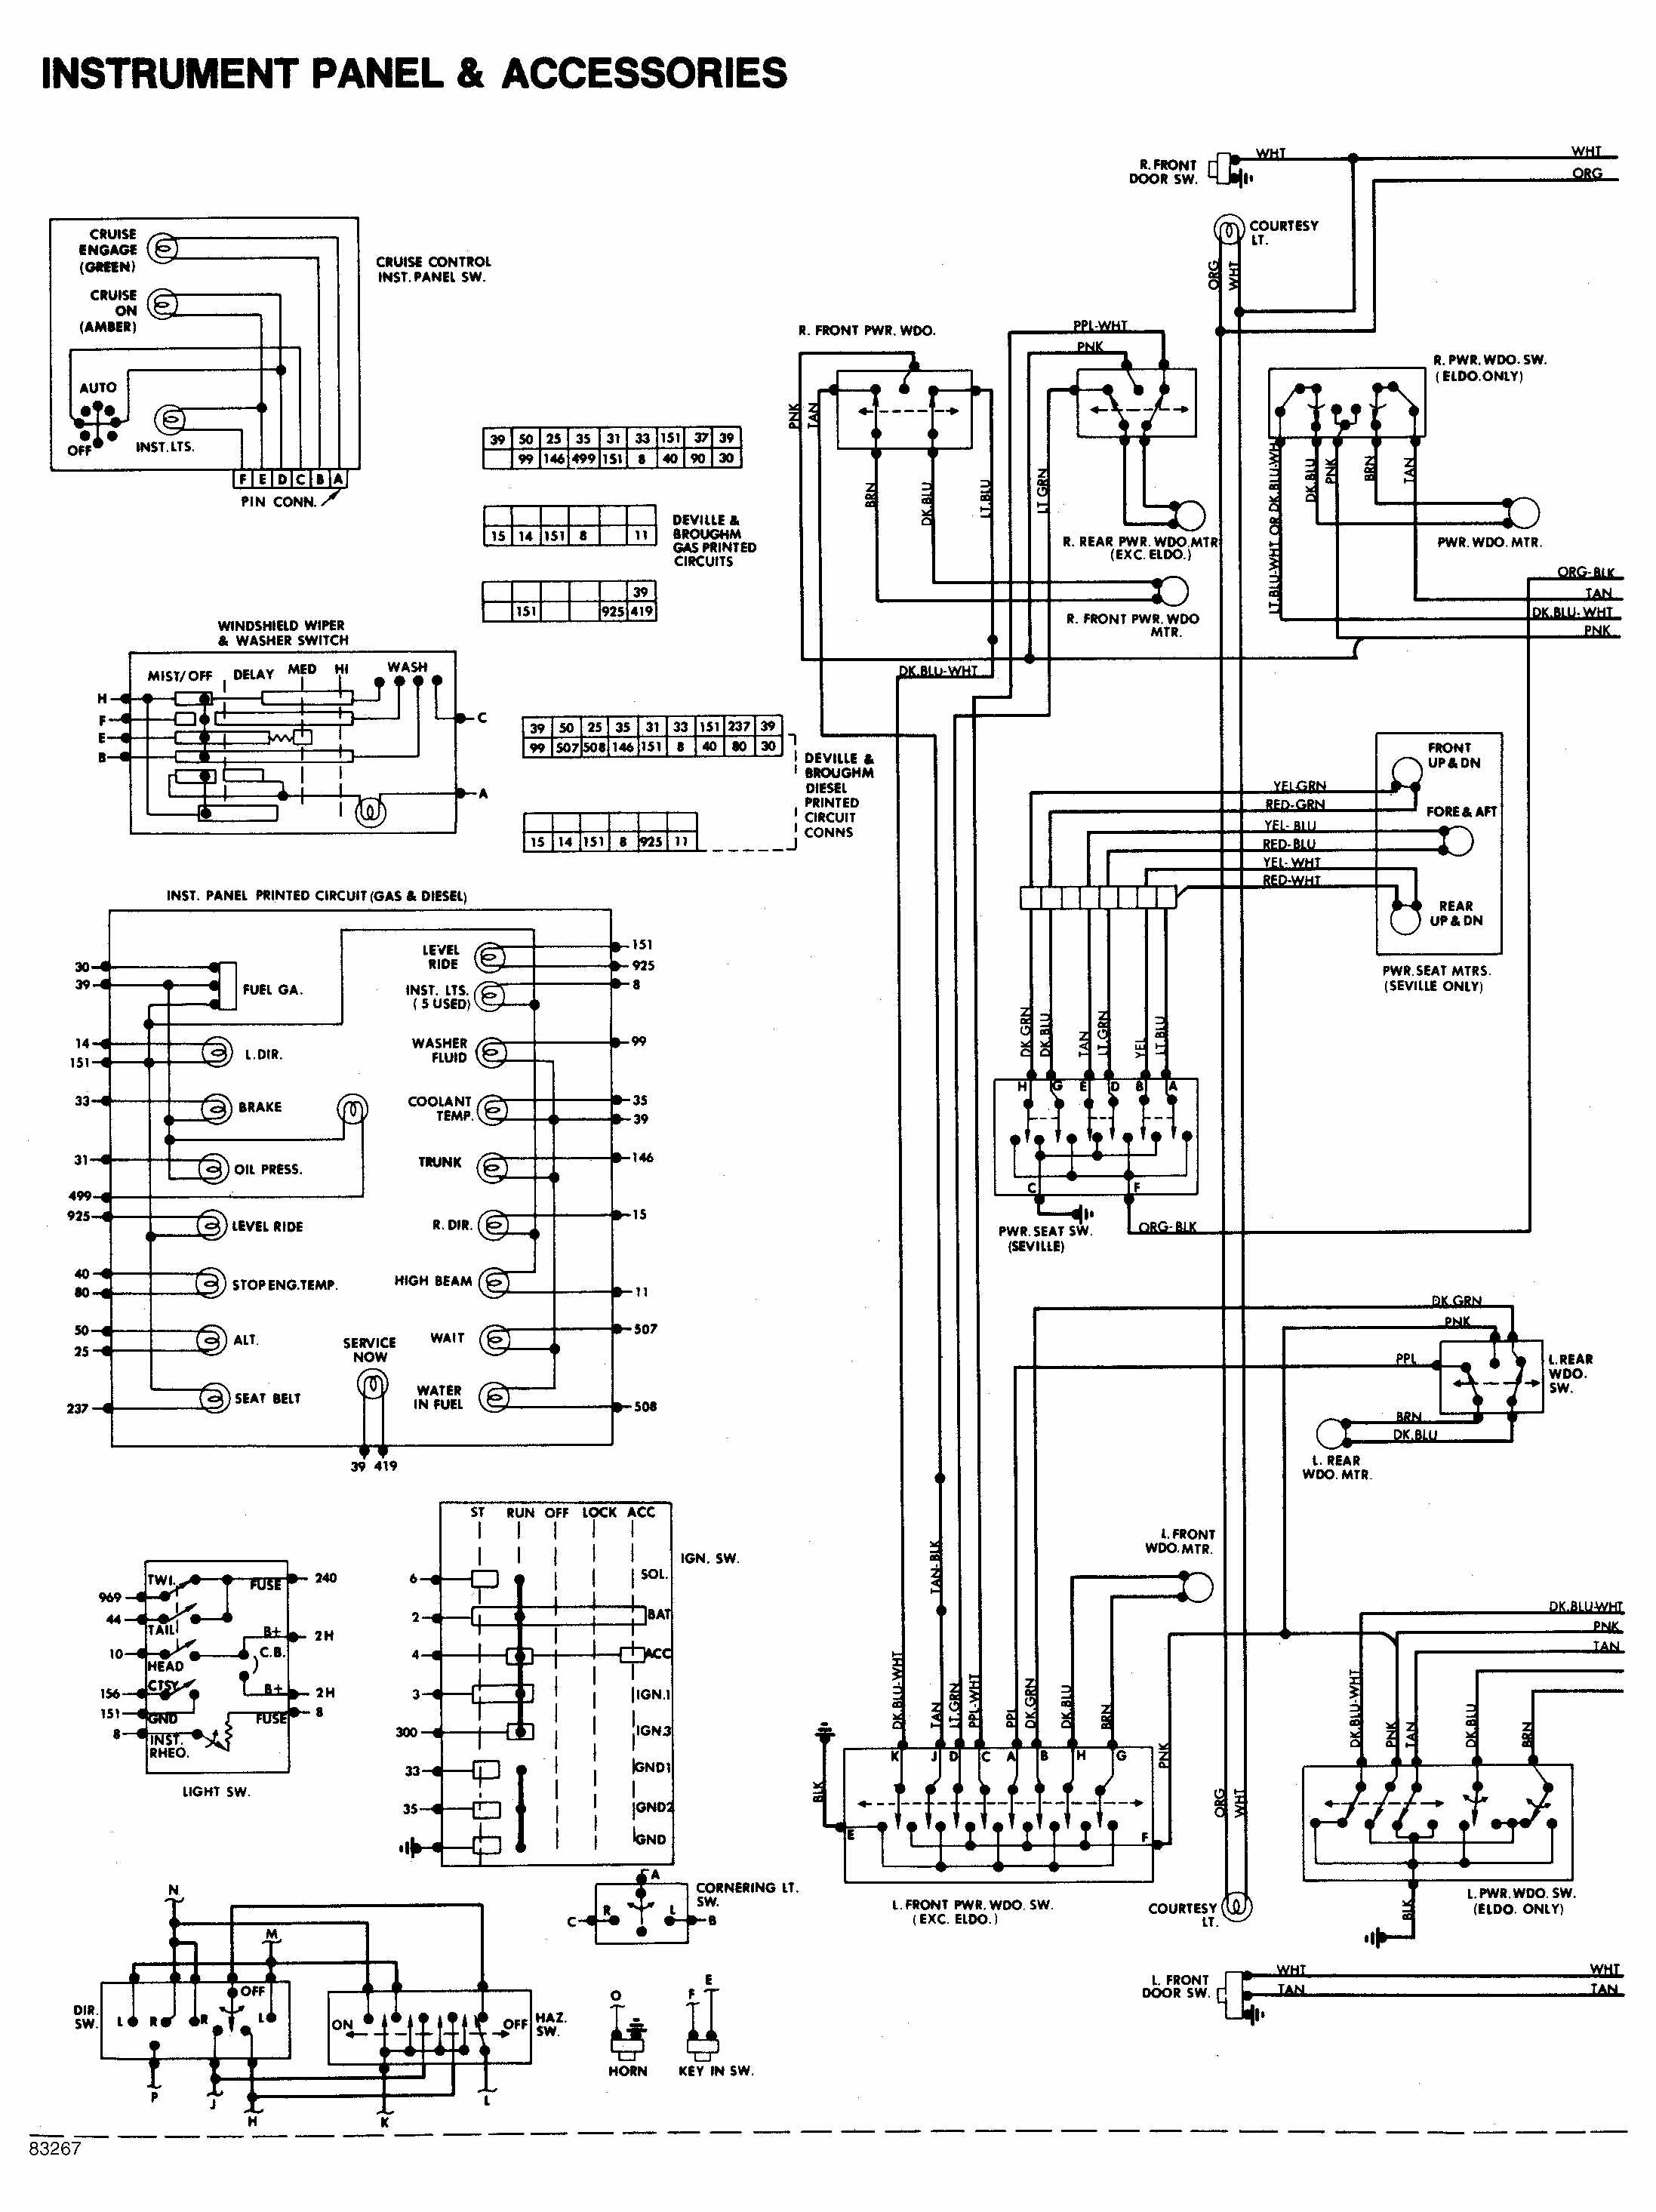 instrument panel and accessories wiring diagram of 1984 cadillac deville cadillac wiring harness ram truck wiring harness \u2022 wiring diagrams 1991 cadillac deville wiring diagram at mifinder.co